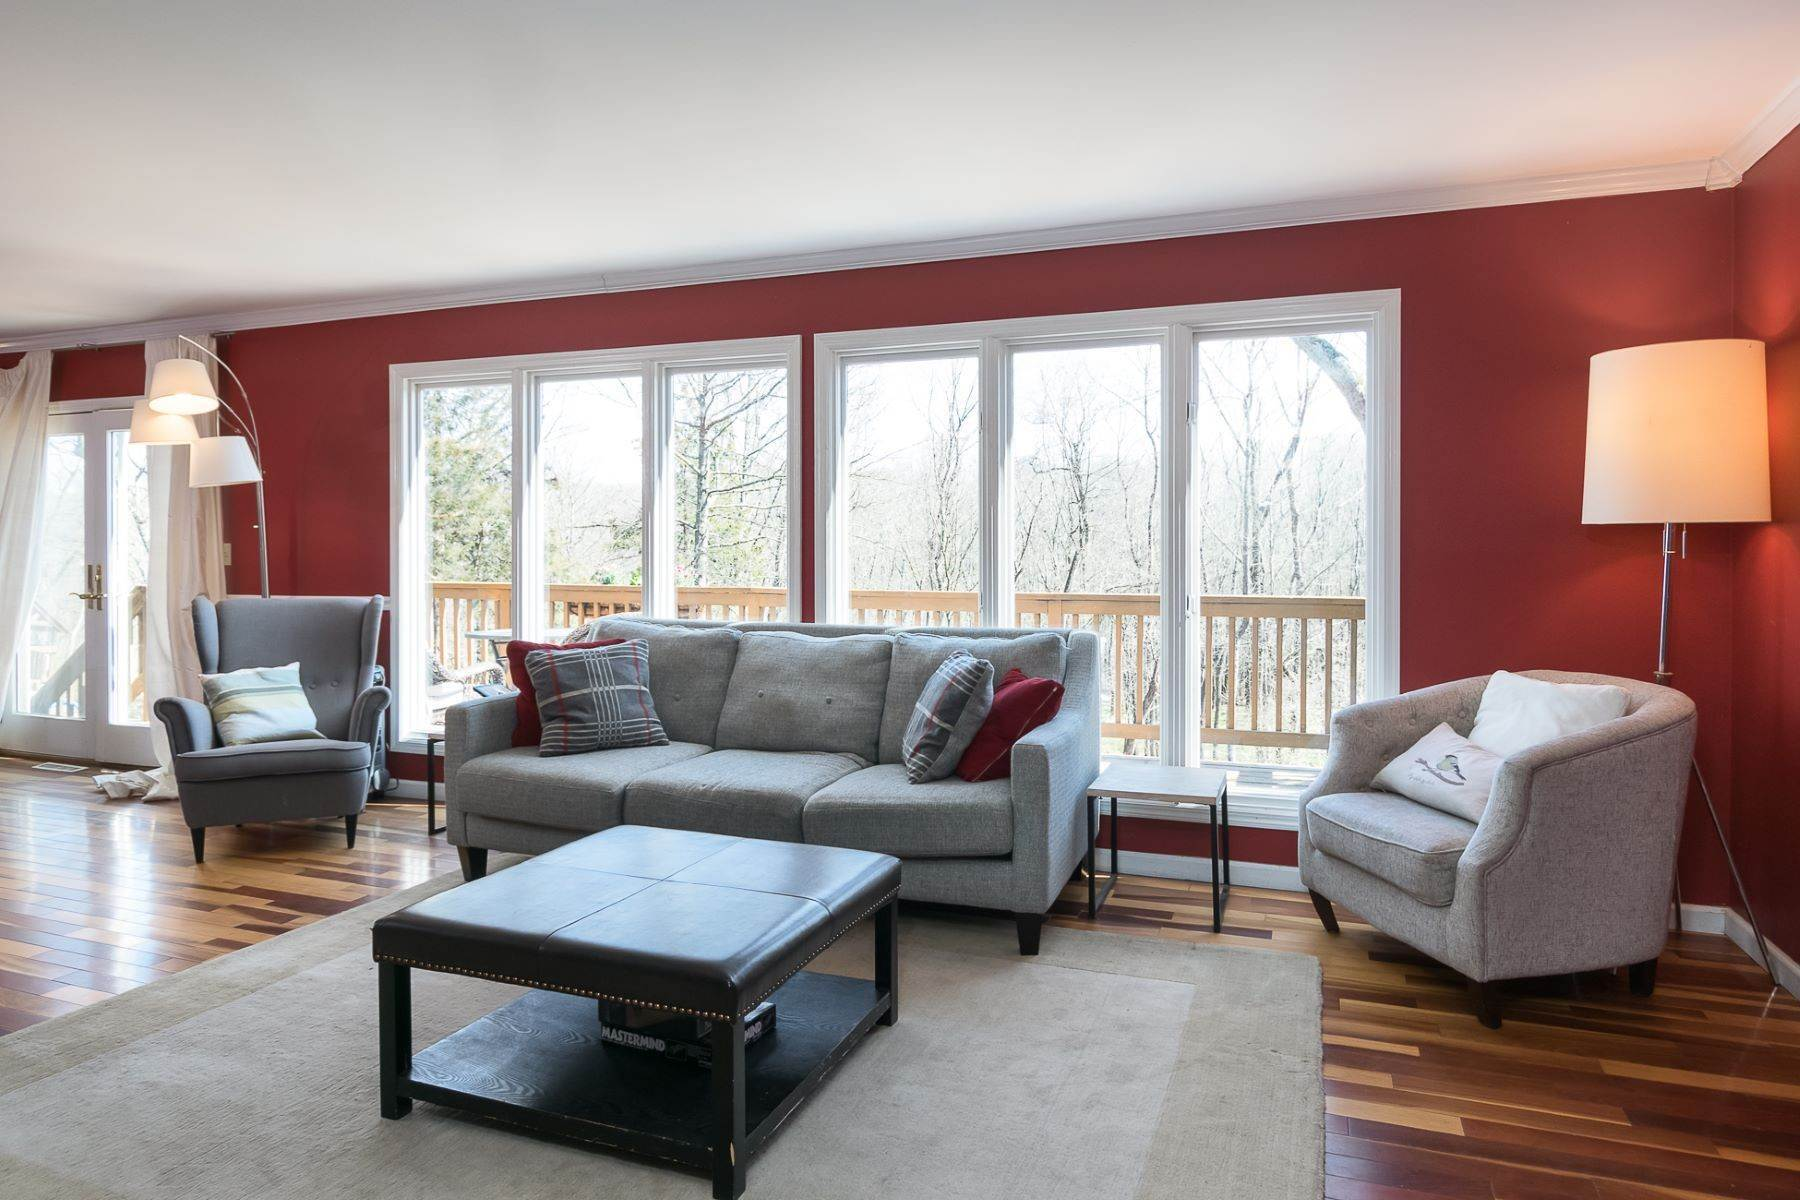 12. Single Family Homes for Sale at The Relaxed Pace of the Country Life Yet Convenient to All 297 Millstone River Road, Belle Mead, New Jersey 08502 United States